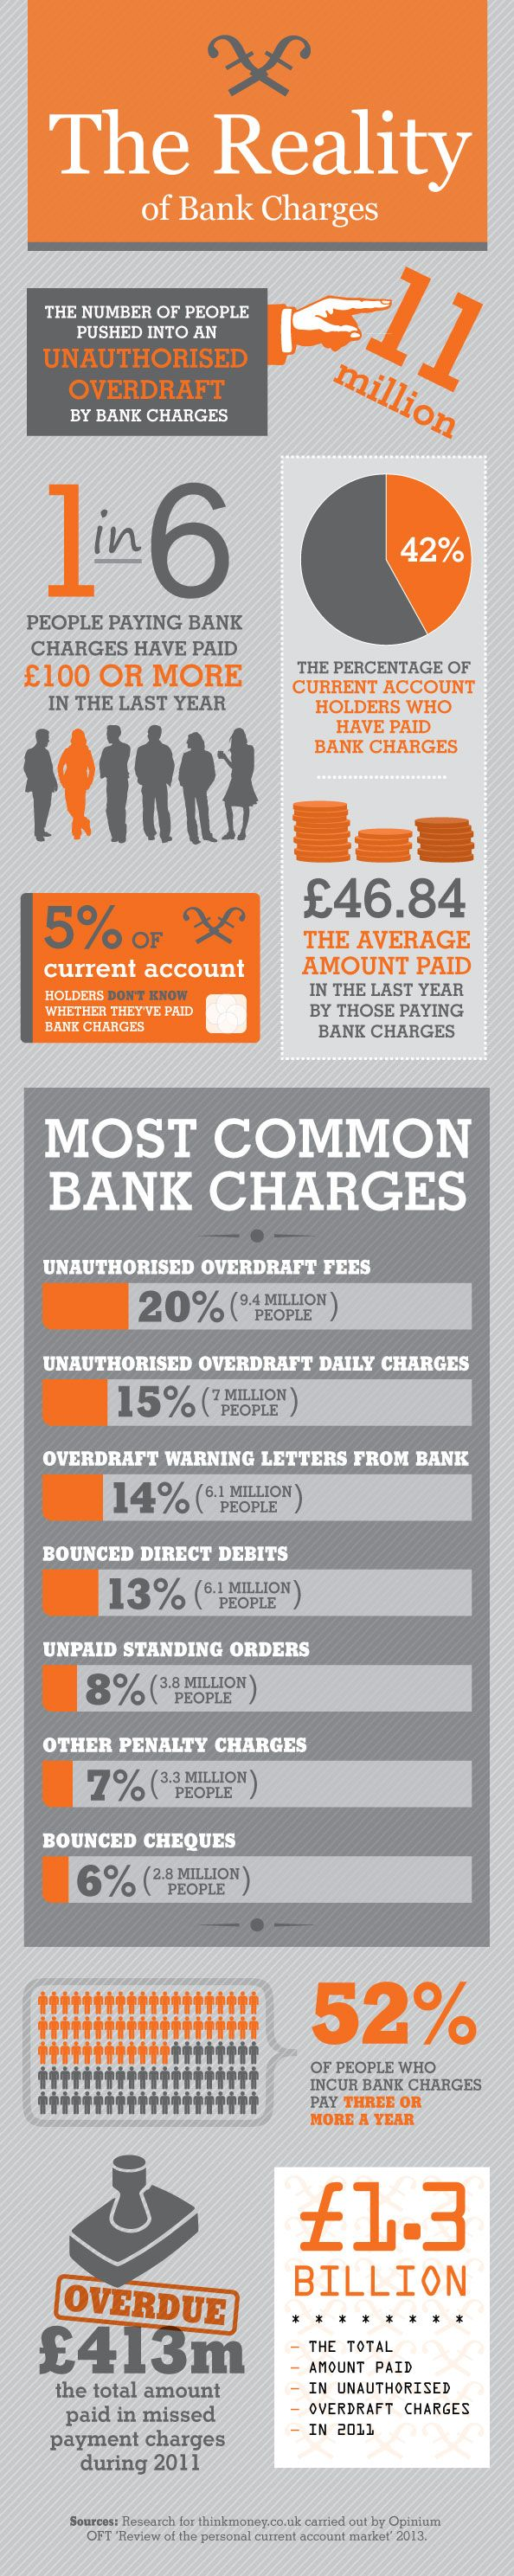 The Reality of Bank Charges